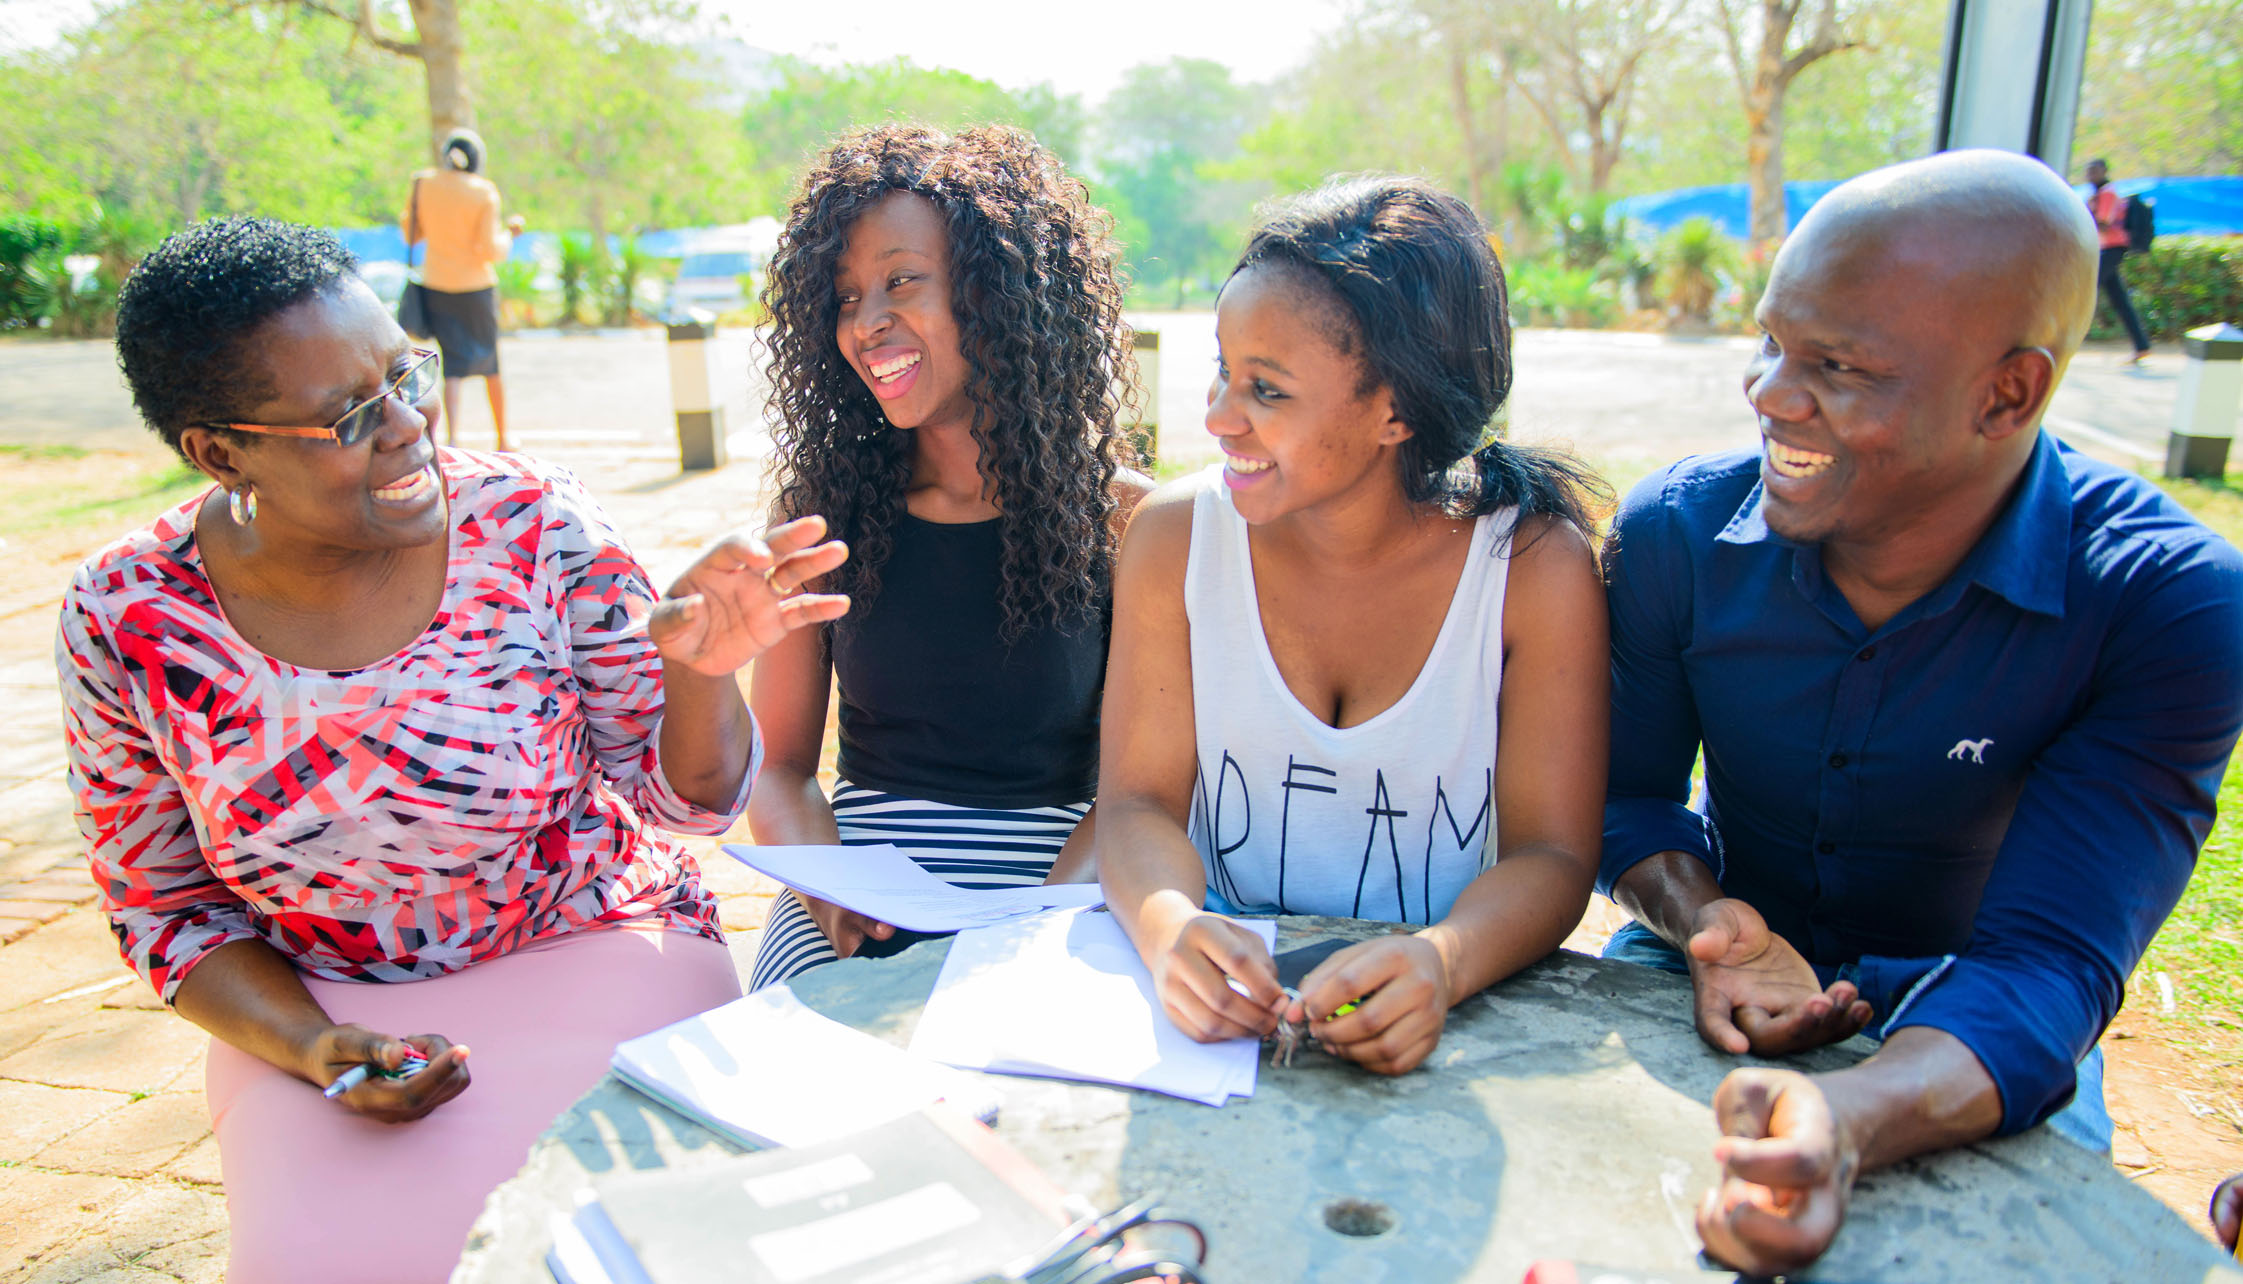 Dr. Mwazvita Machinga, (extreme left) in conversation with students.